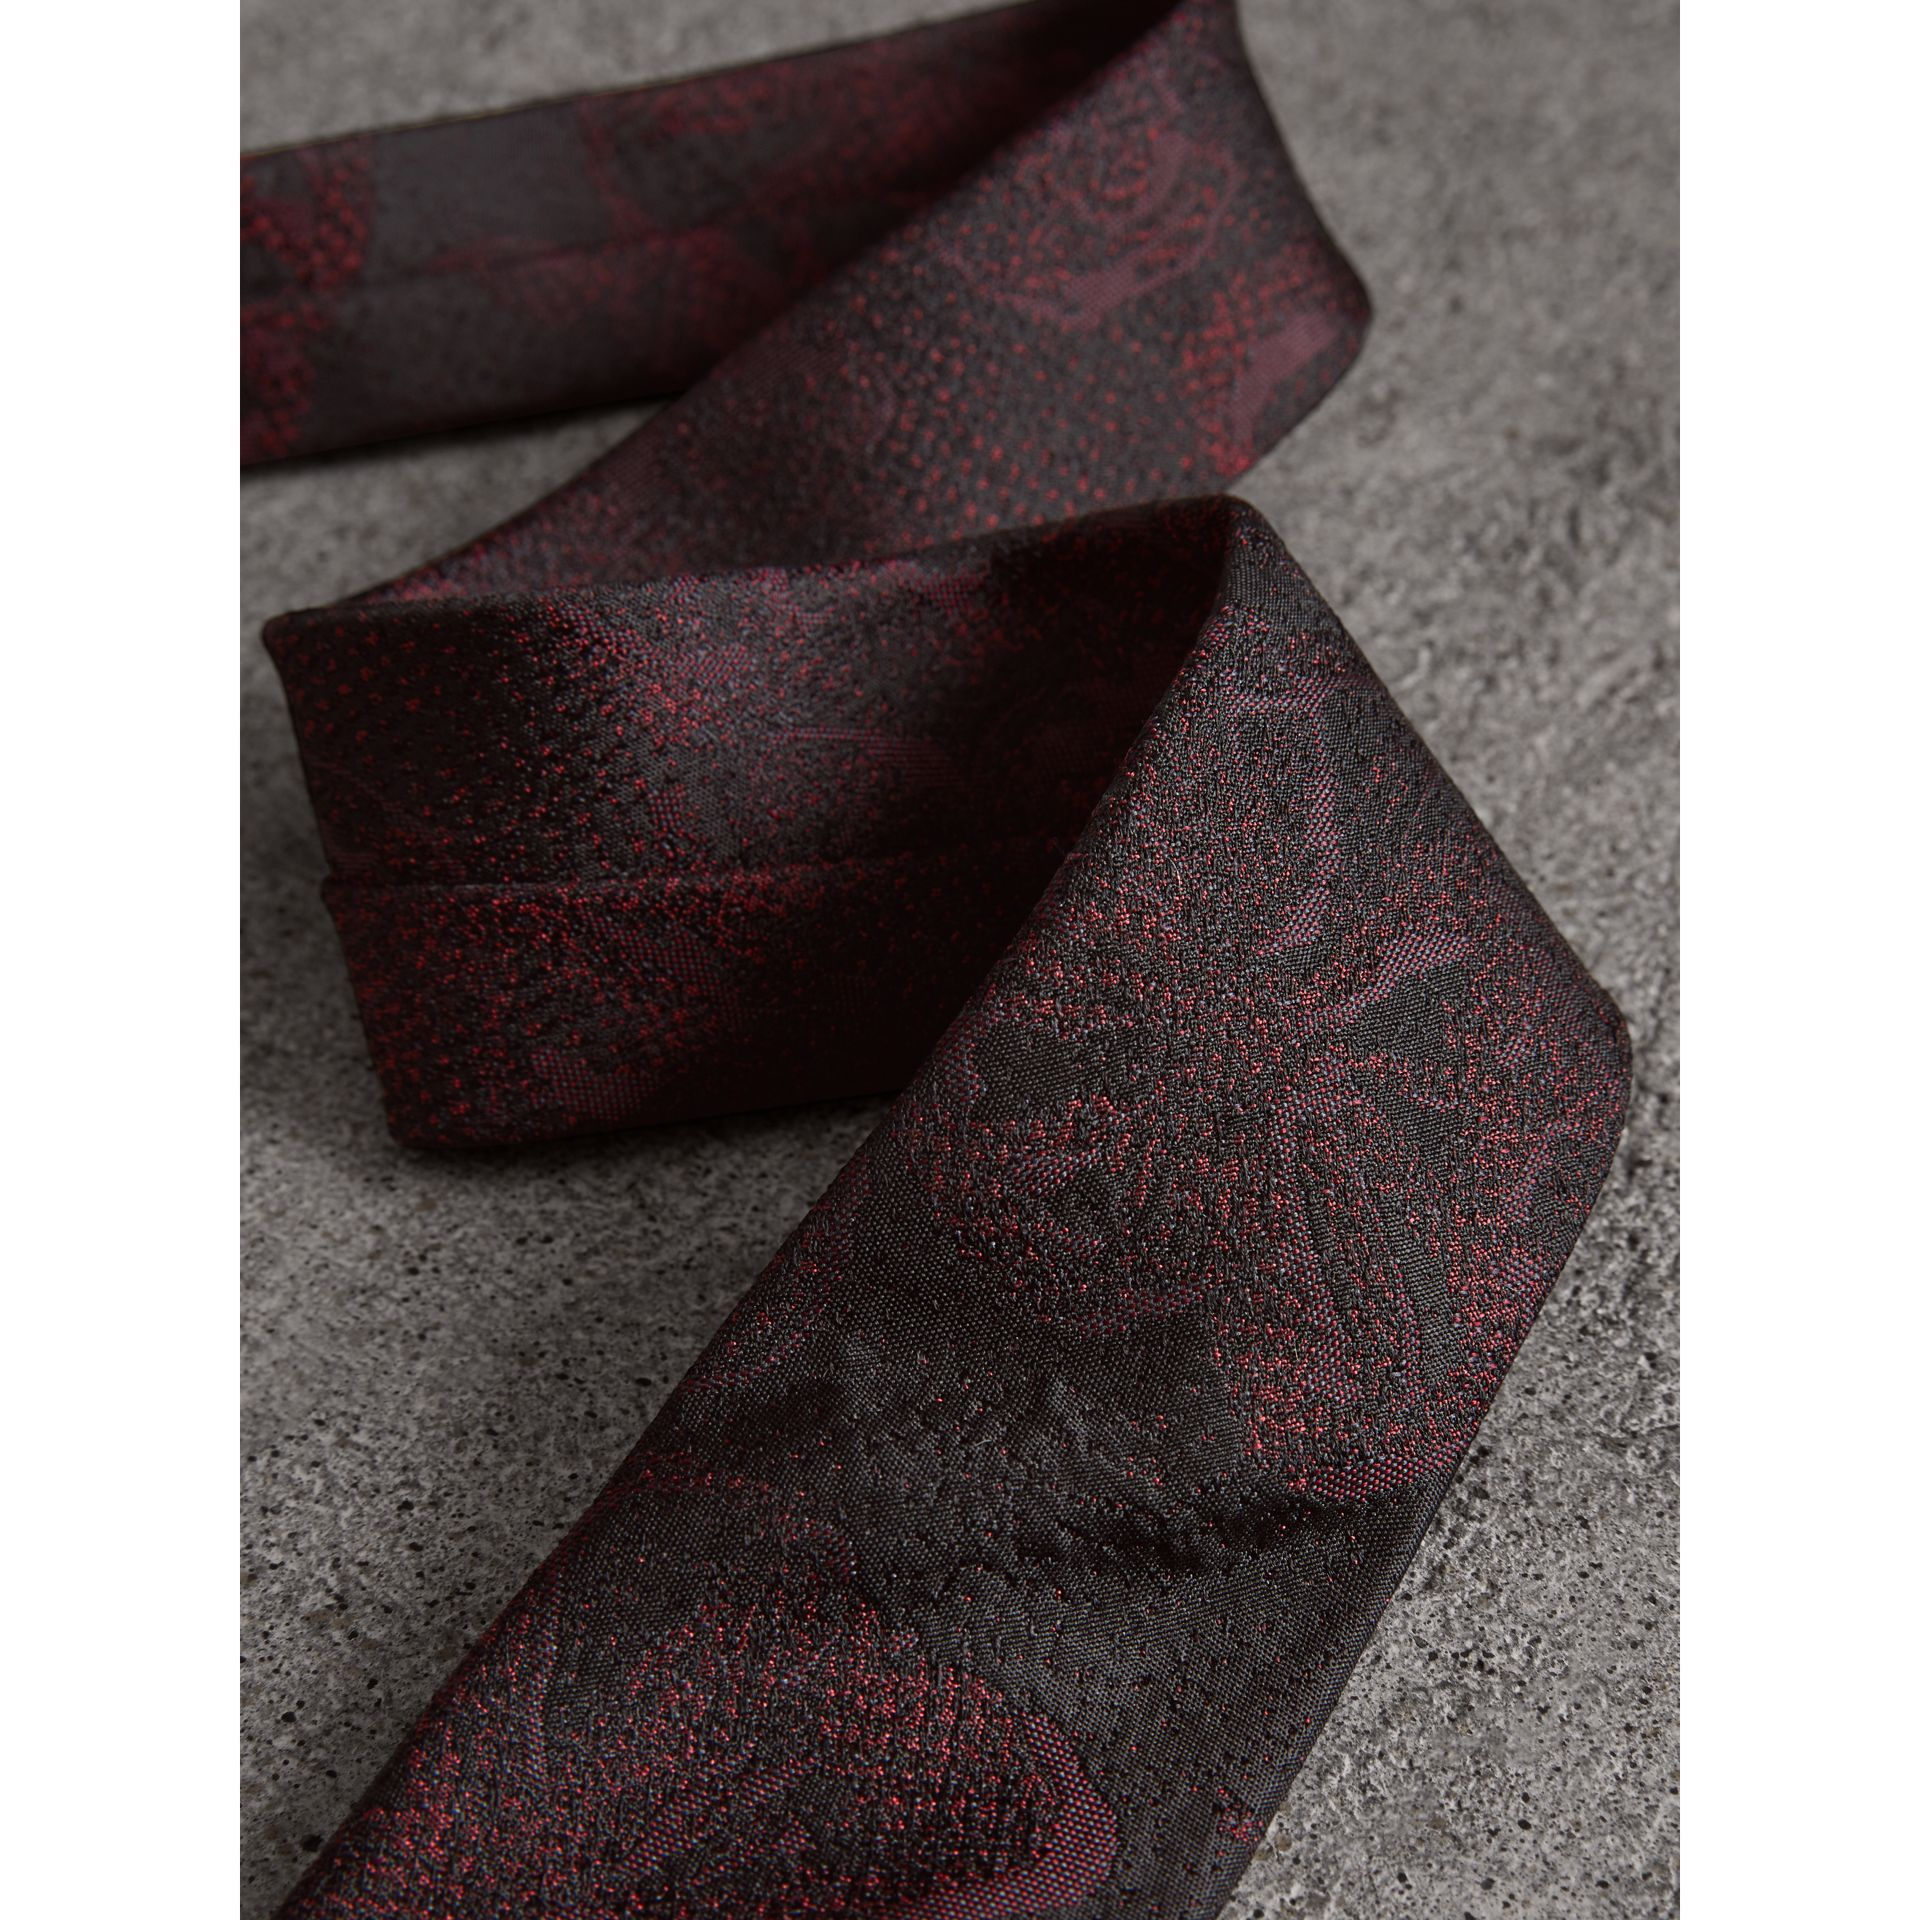 Slim Cut Floral Jacquard Silk Tie in Deep Claret - Men | Burberry Canada - gallery image 1